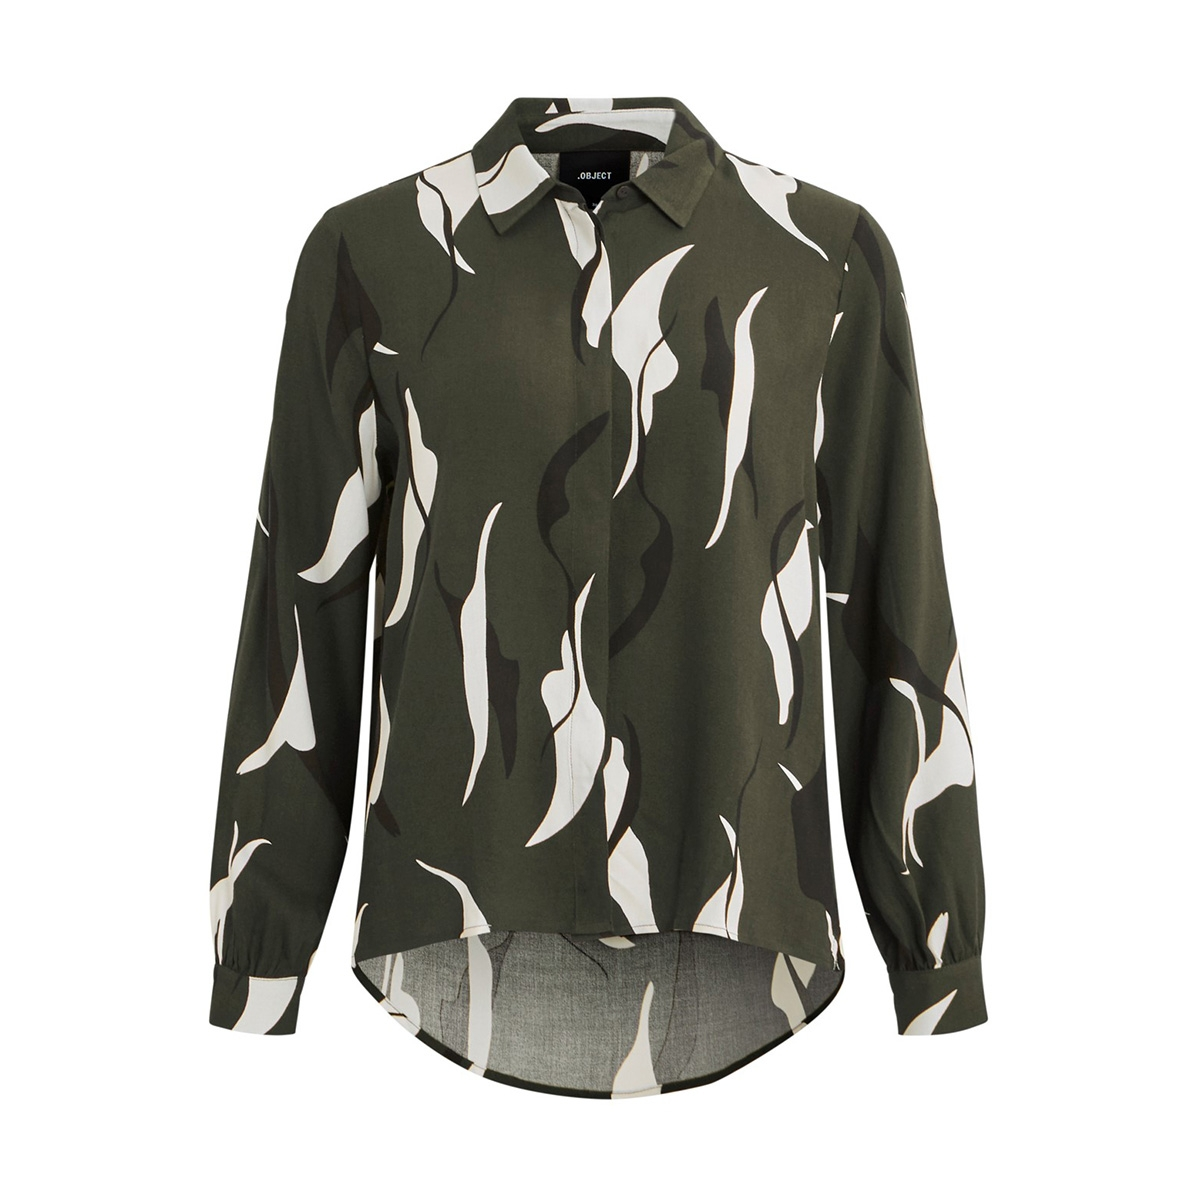 objalora bay l/s shirt rep 23031199 object blouse forest night/aop